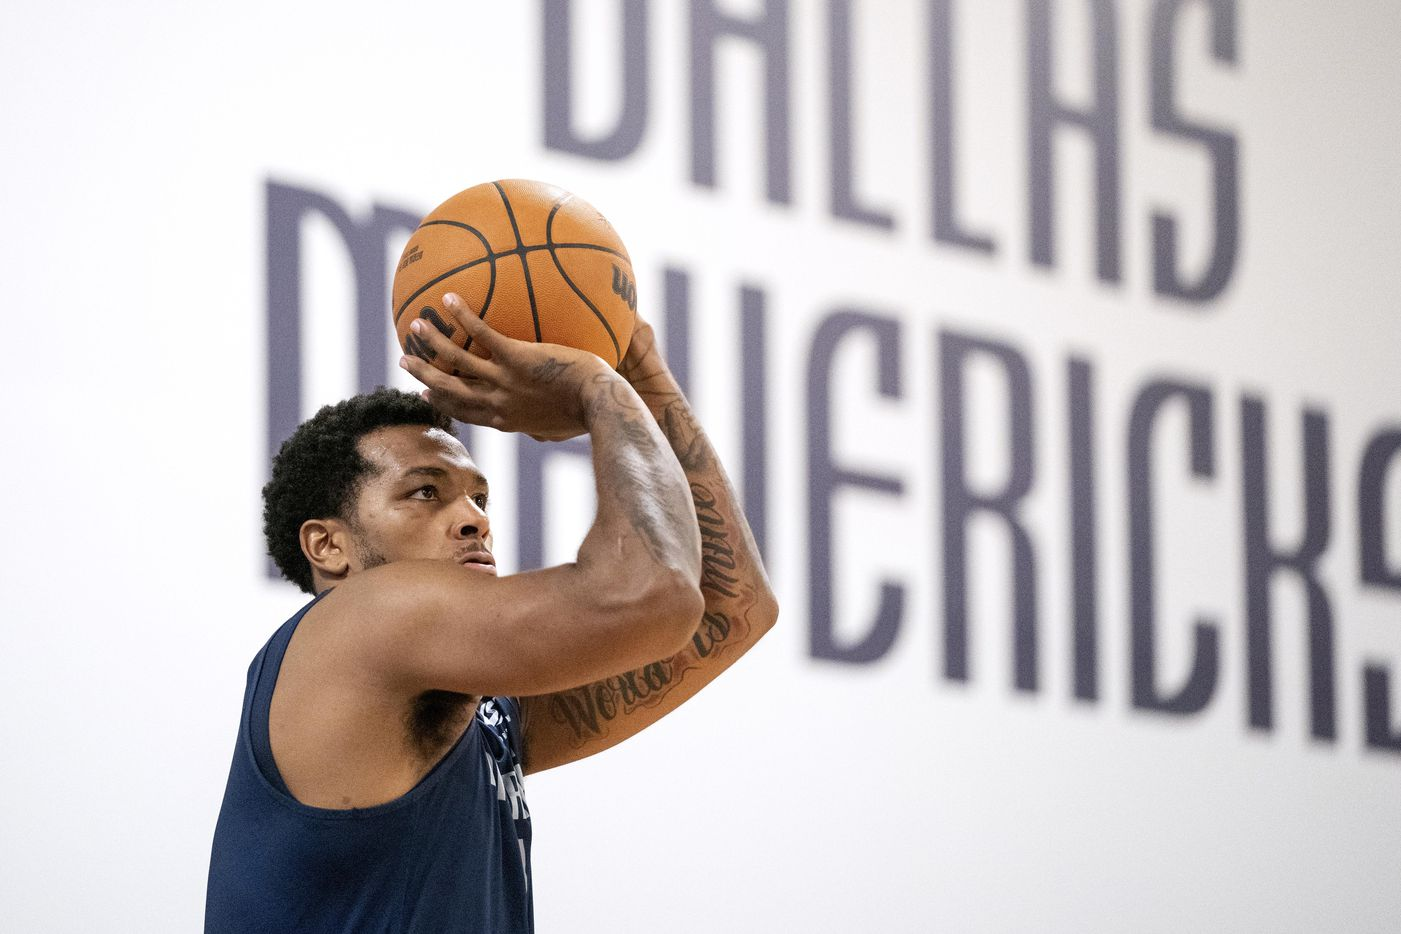 Dallas Mavericks guard Sterling Brown (0) runs through a shooting drill during a training camp practice Wednesday, September 29, 2021 at the Dallas Mavericks Training Center in Dallas. (Jeffrey McWhorter/Special Contributor)